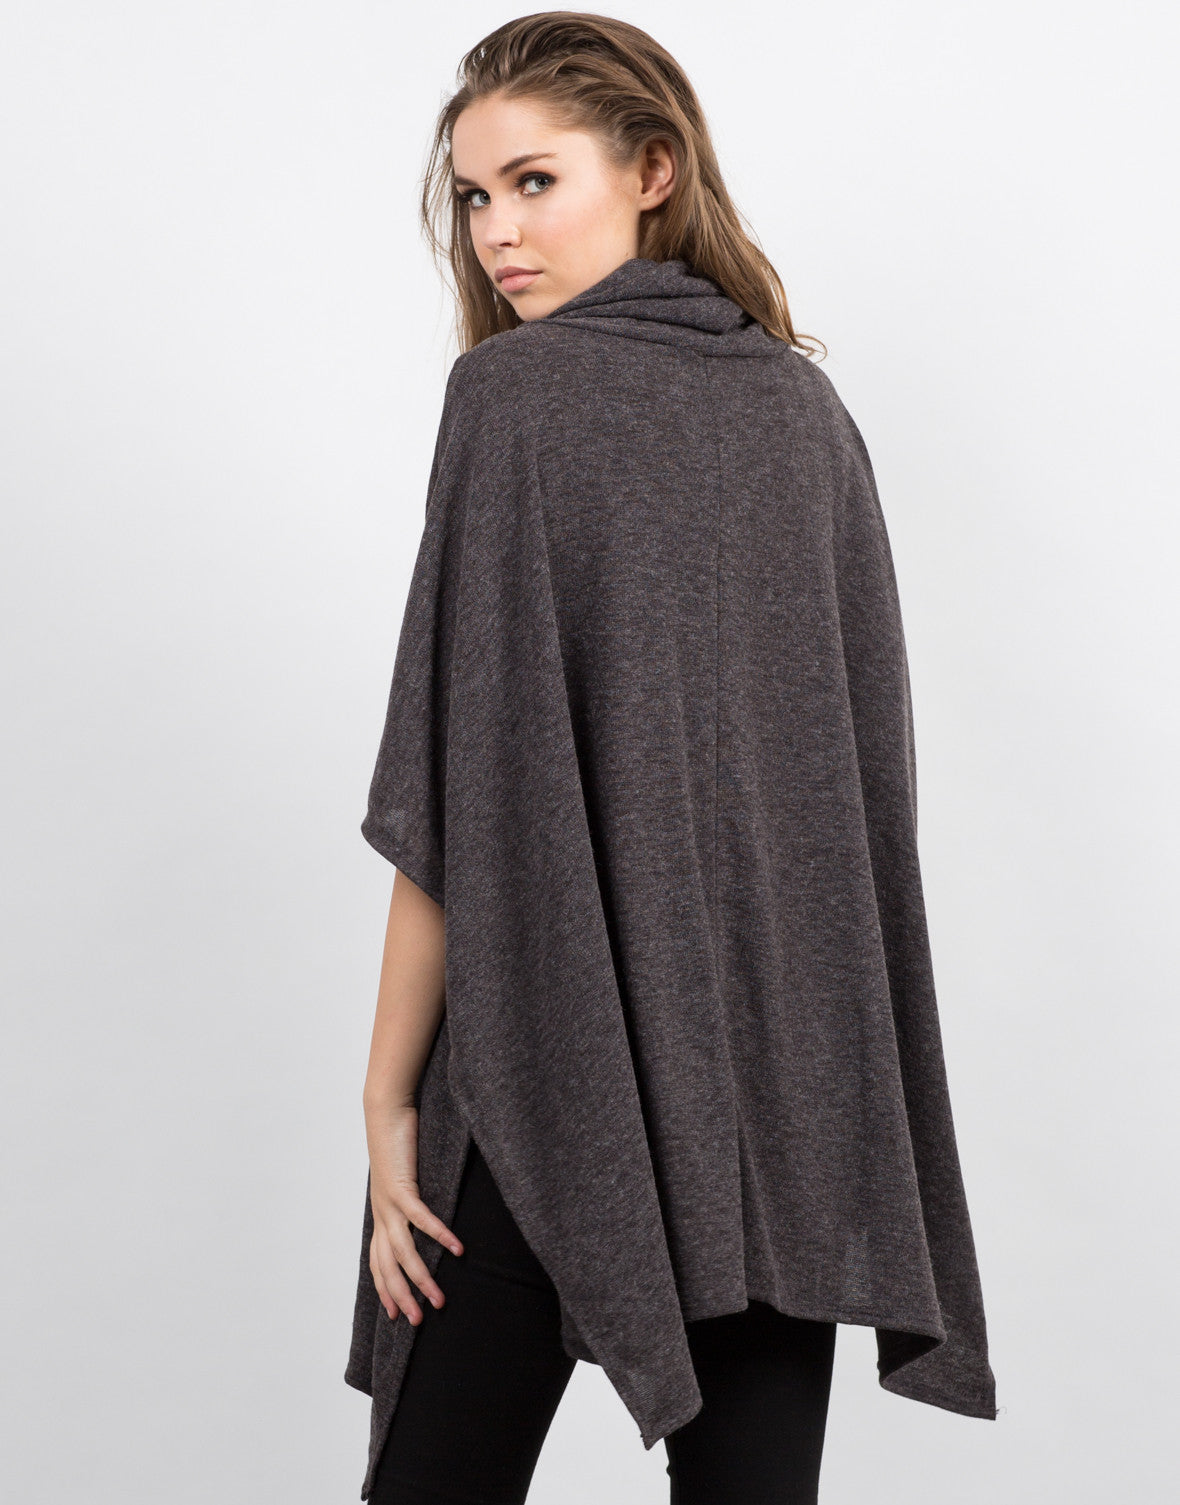 Back View of Oversized Poncho Top